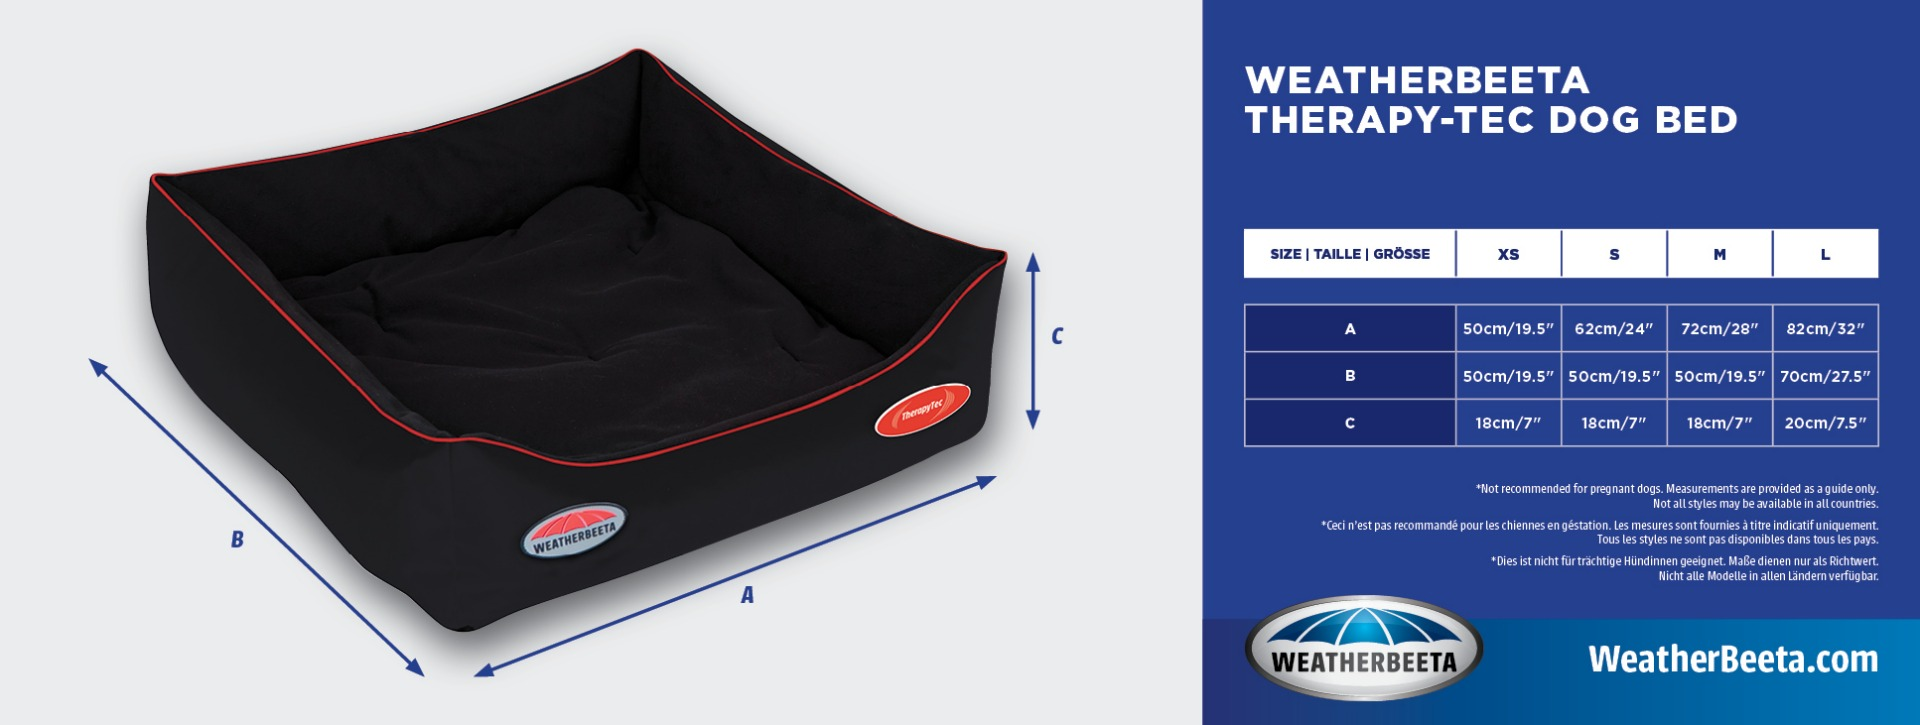 WeatherBeeta Therapy-Tec Dog Bed Size Chart